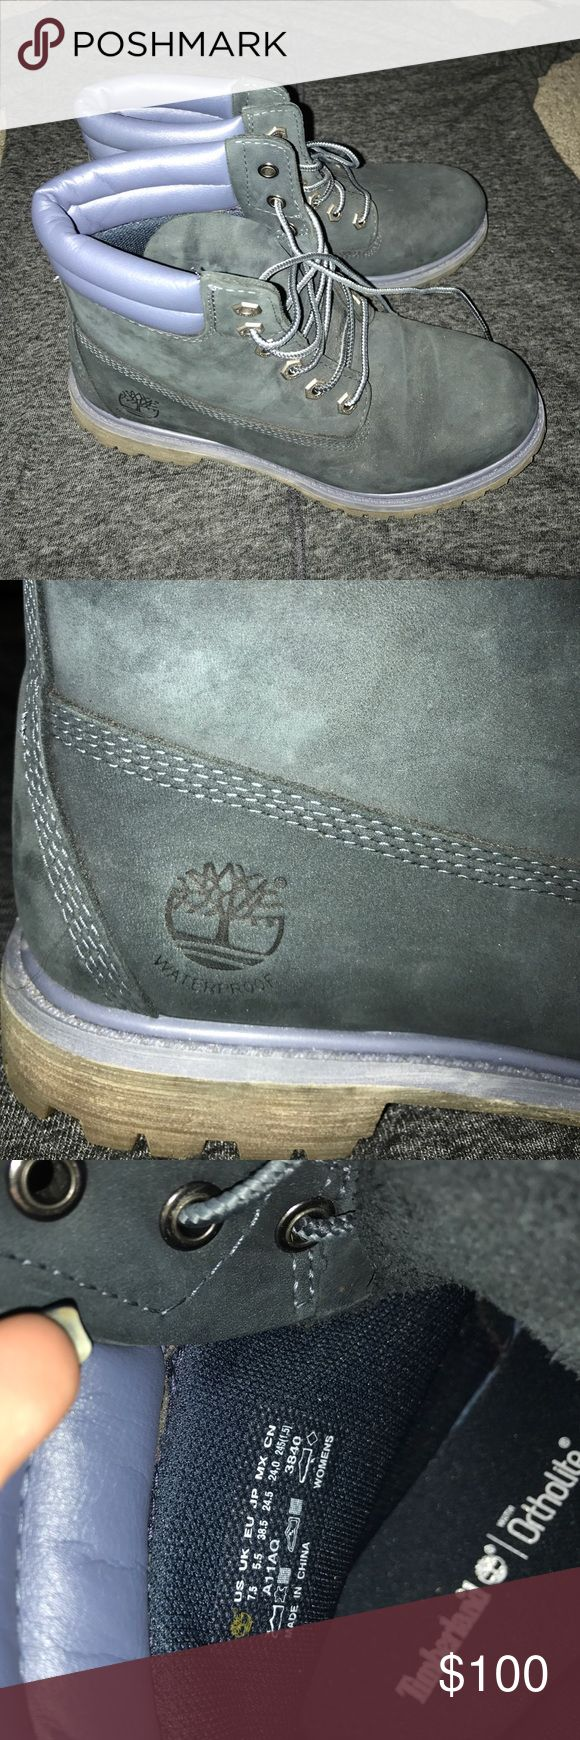 New navy blue timberland boots Brand new! Worn once! Navy blue timberland boots size 7.5 Timberland Shoes Combat & Moto Boots